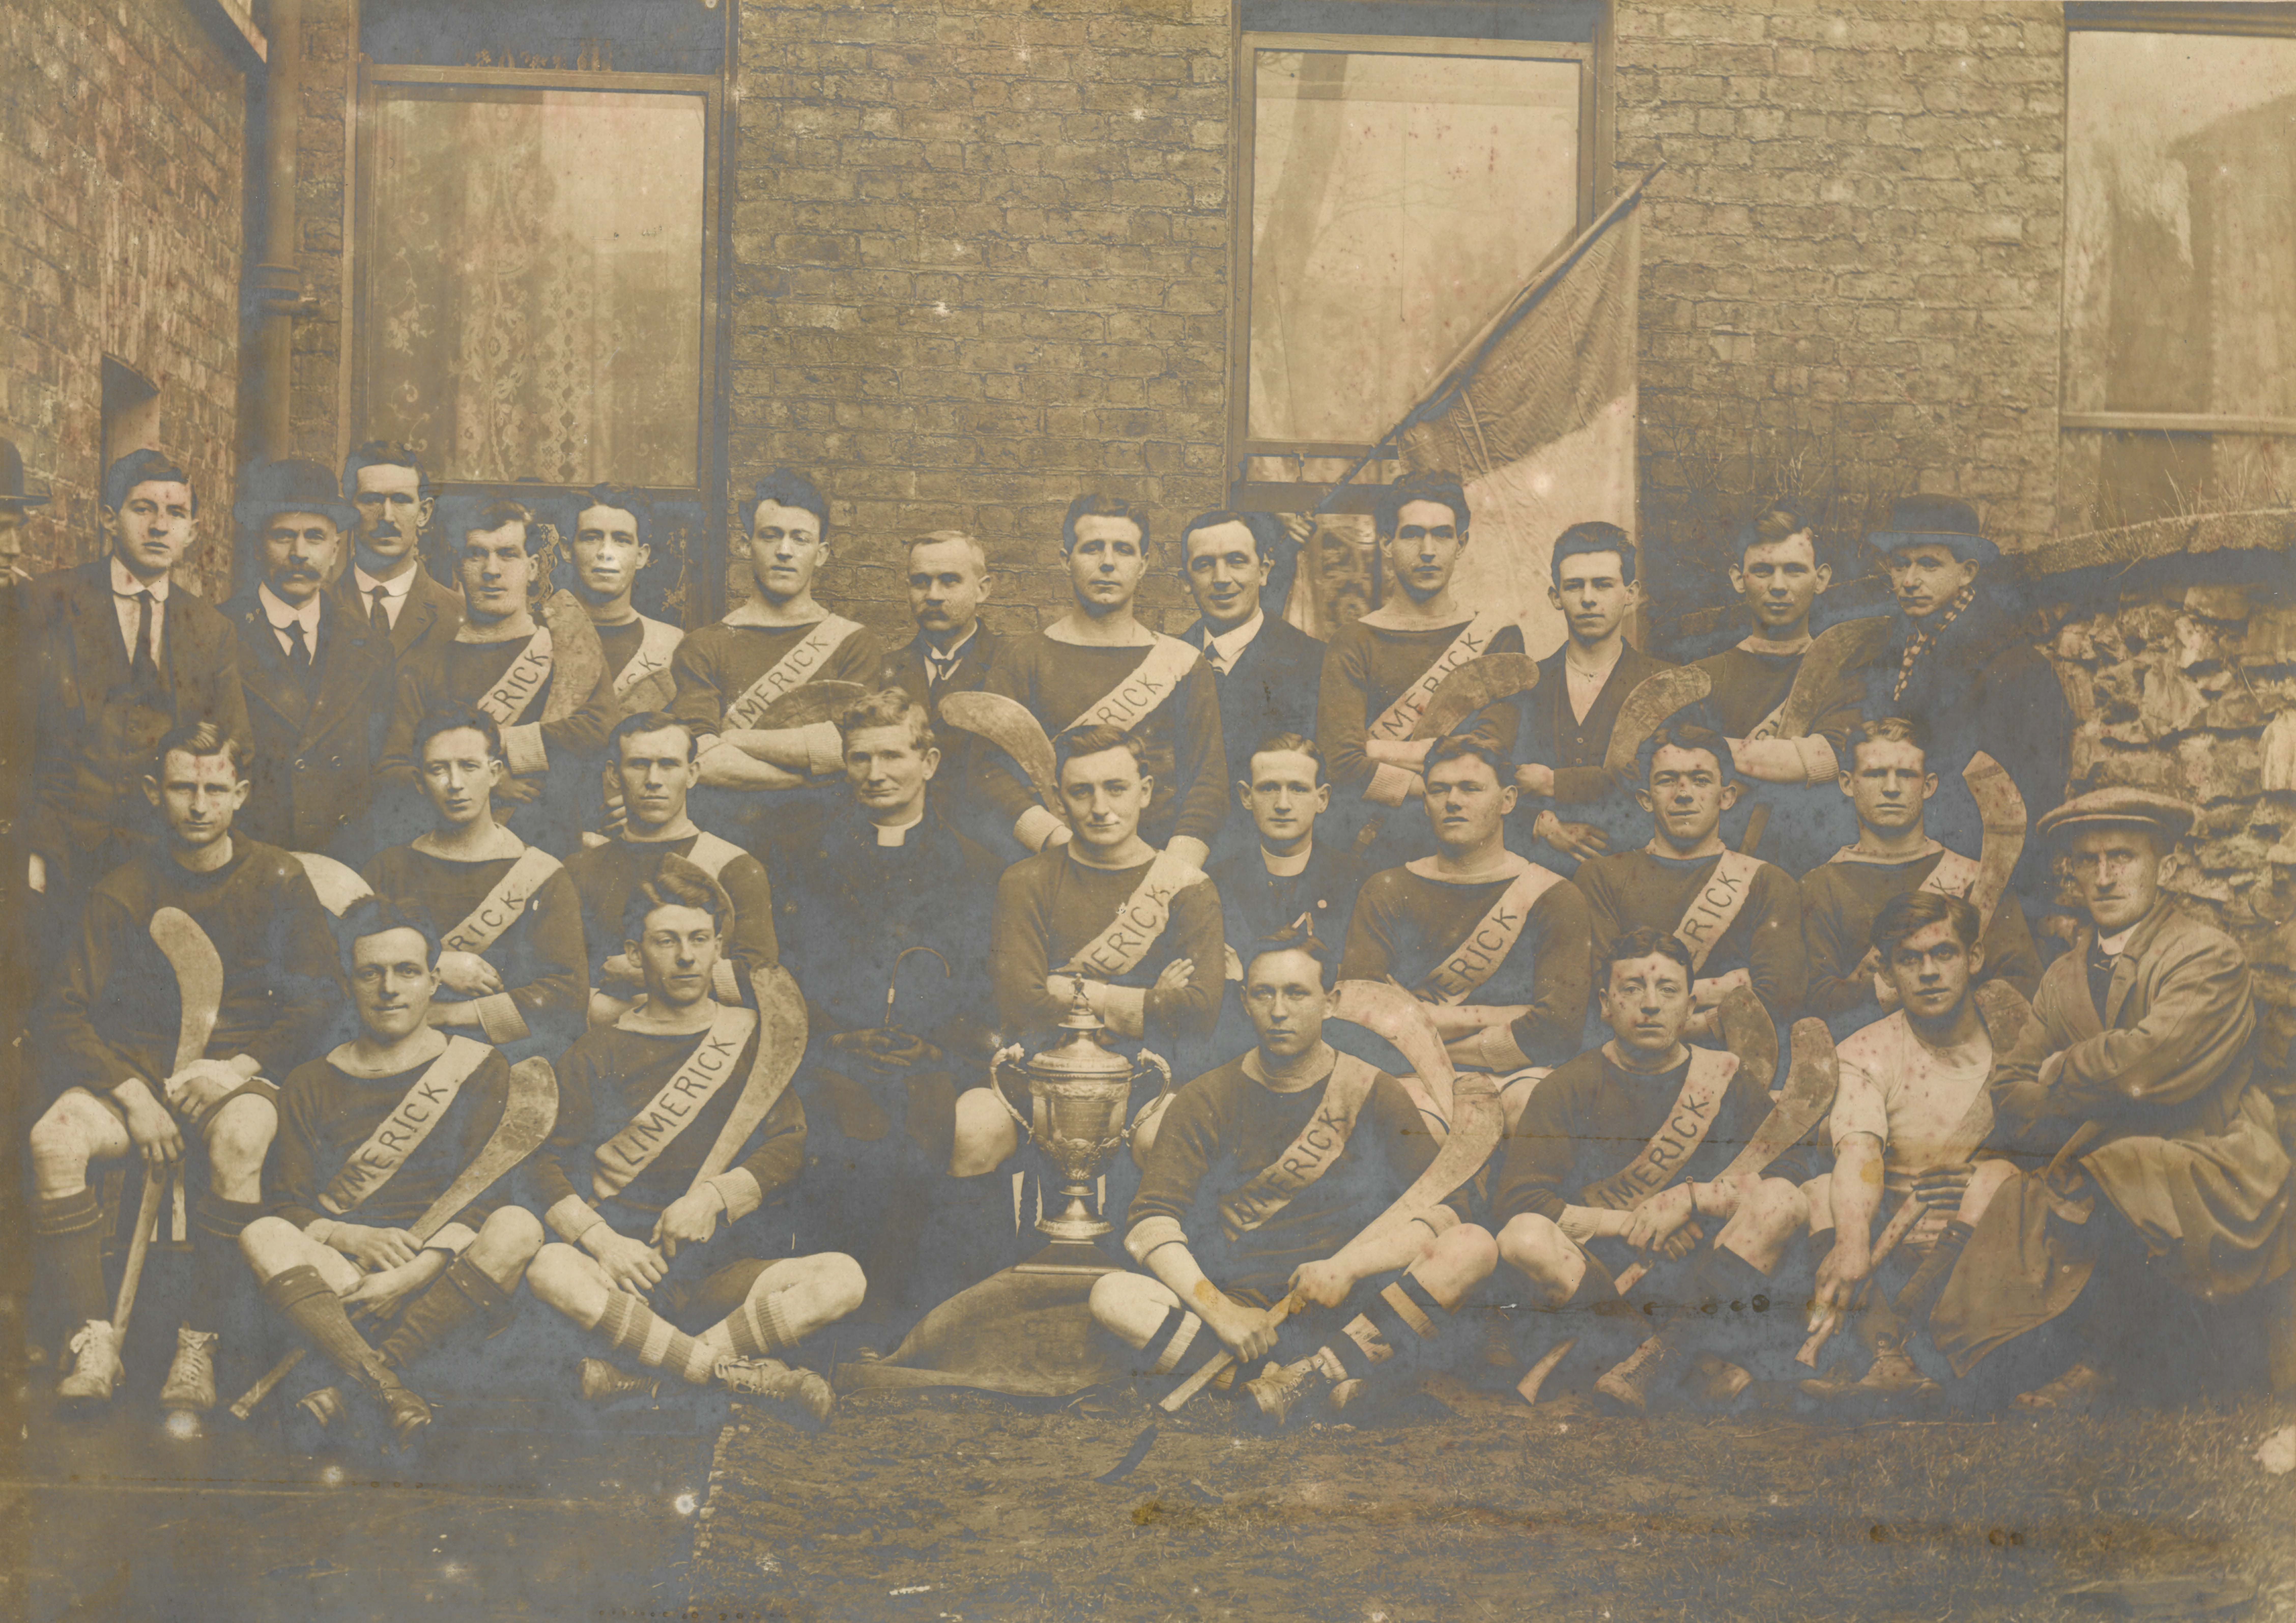 Limerick (Newcastle West) 1918 Hurling All-Ireland Champions